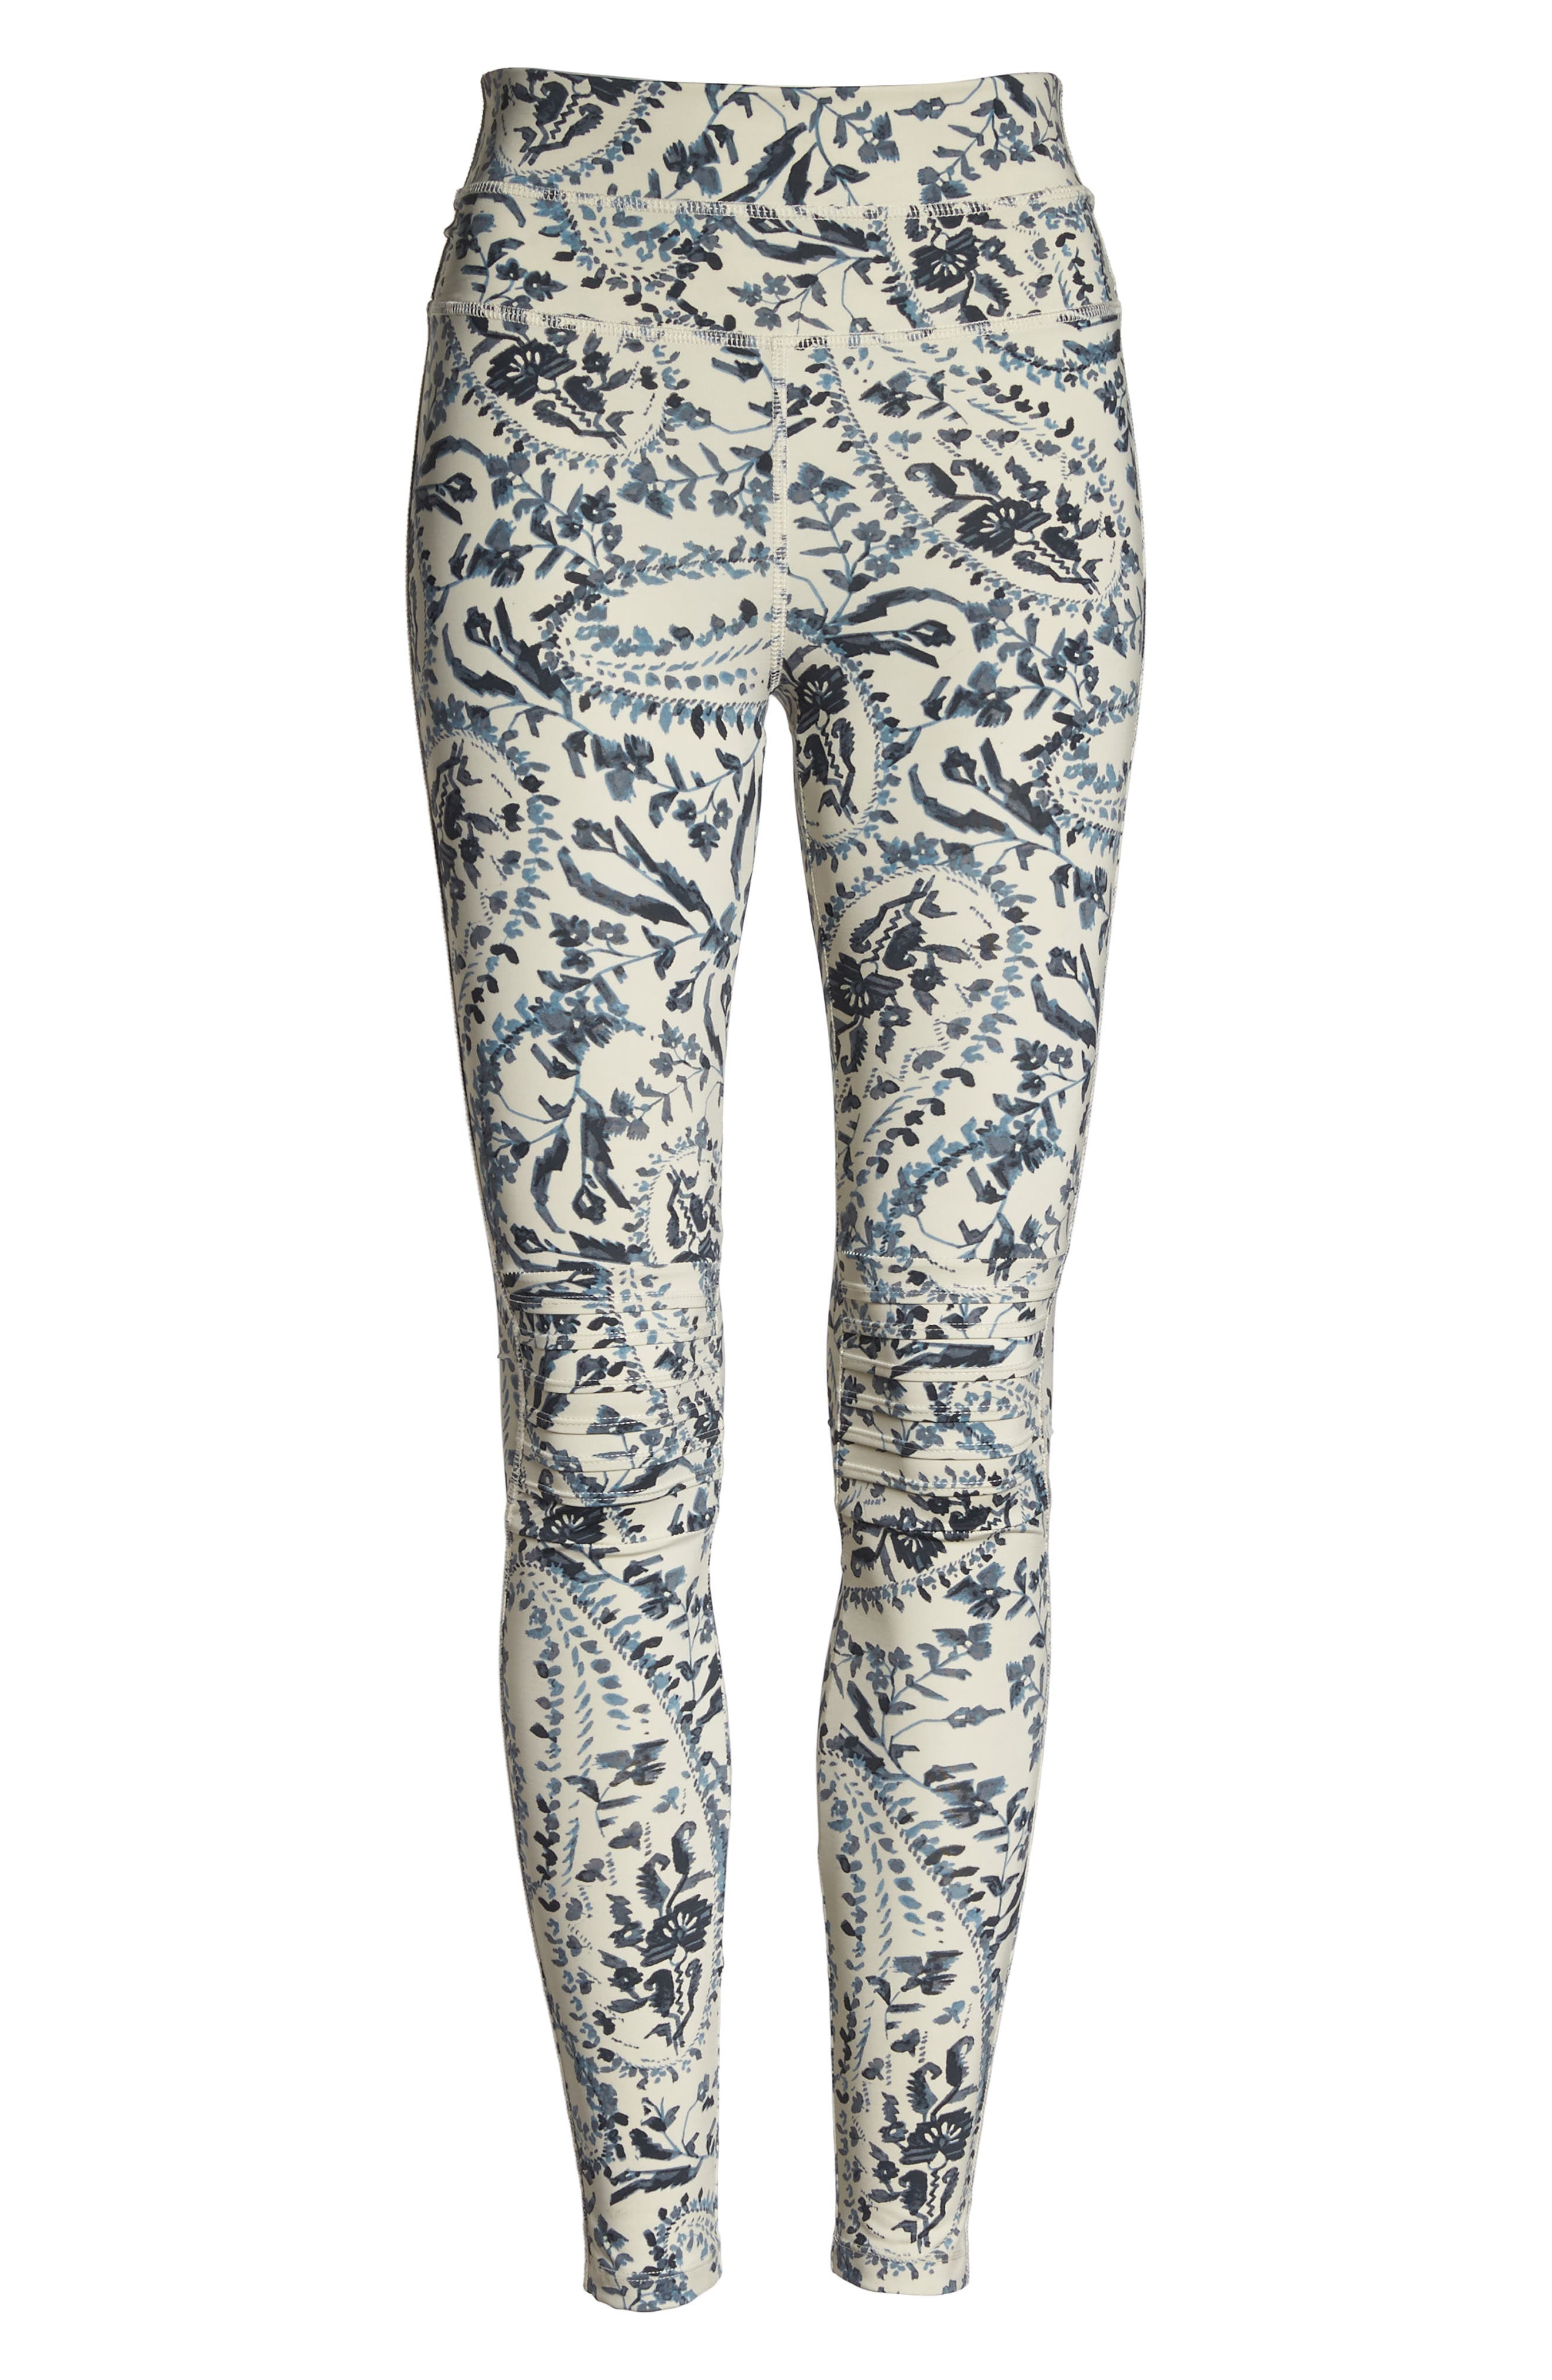 FP Movement Print City Slicker High Waist Leggings,                             Alternate thumbnail 7, color,                             400